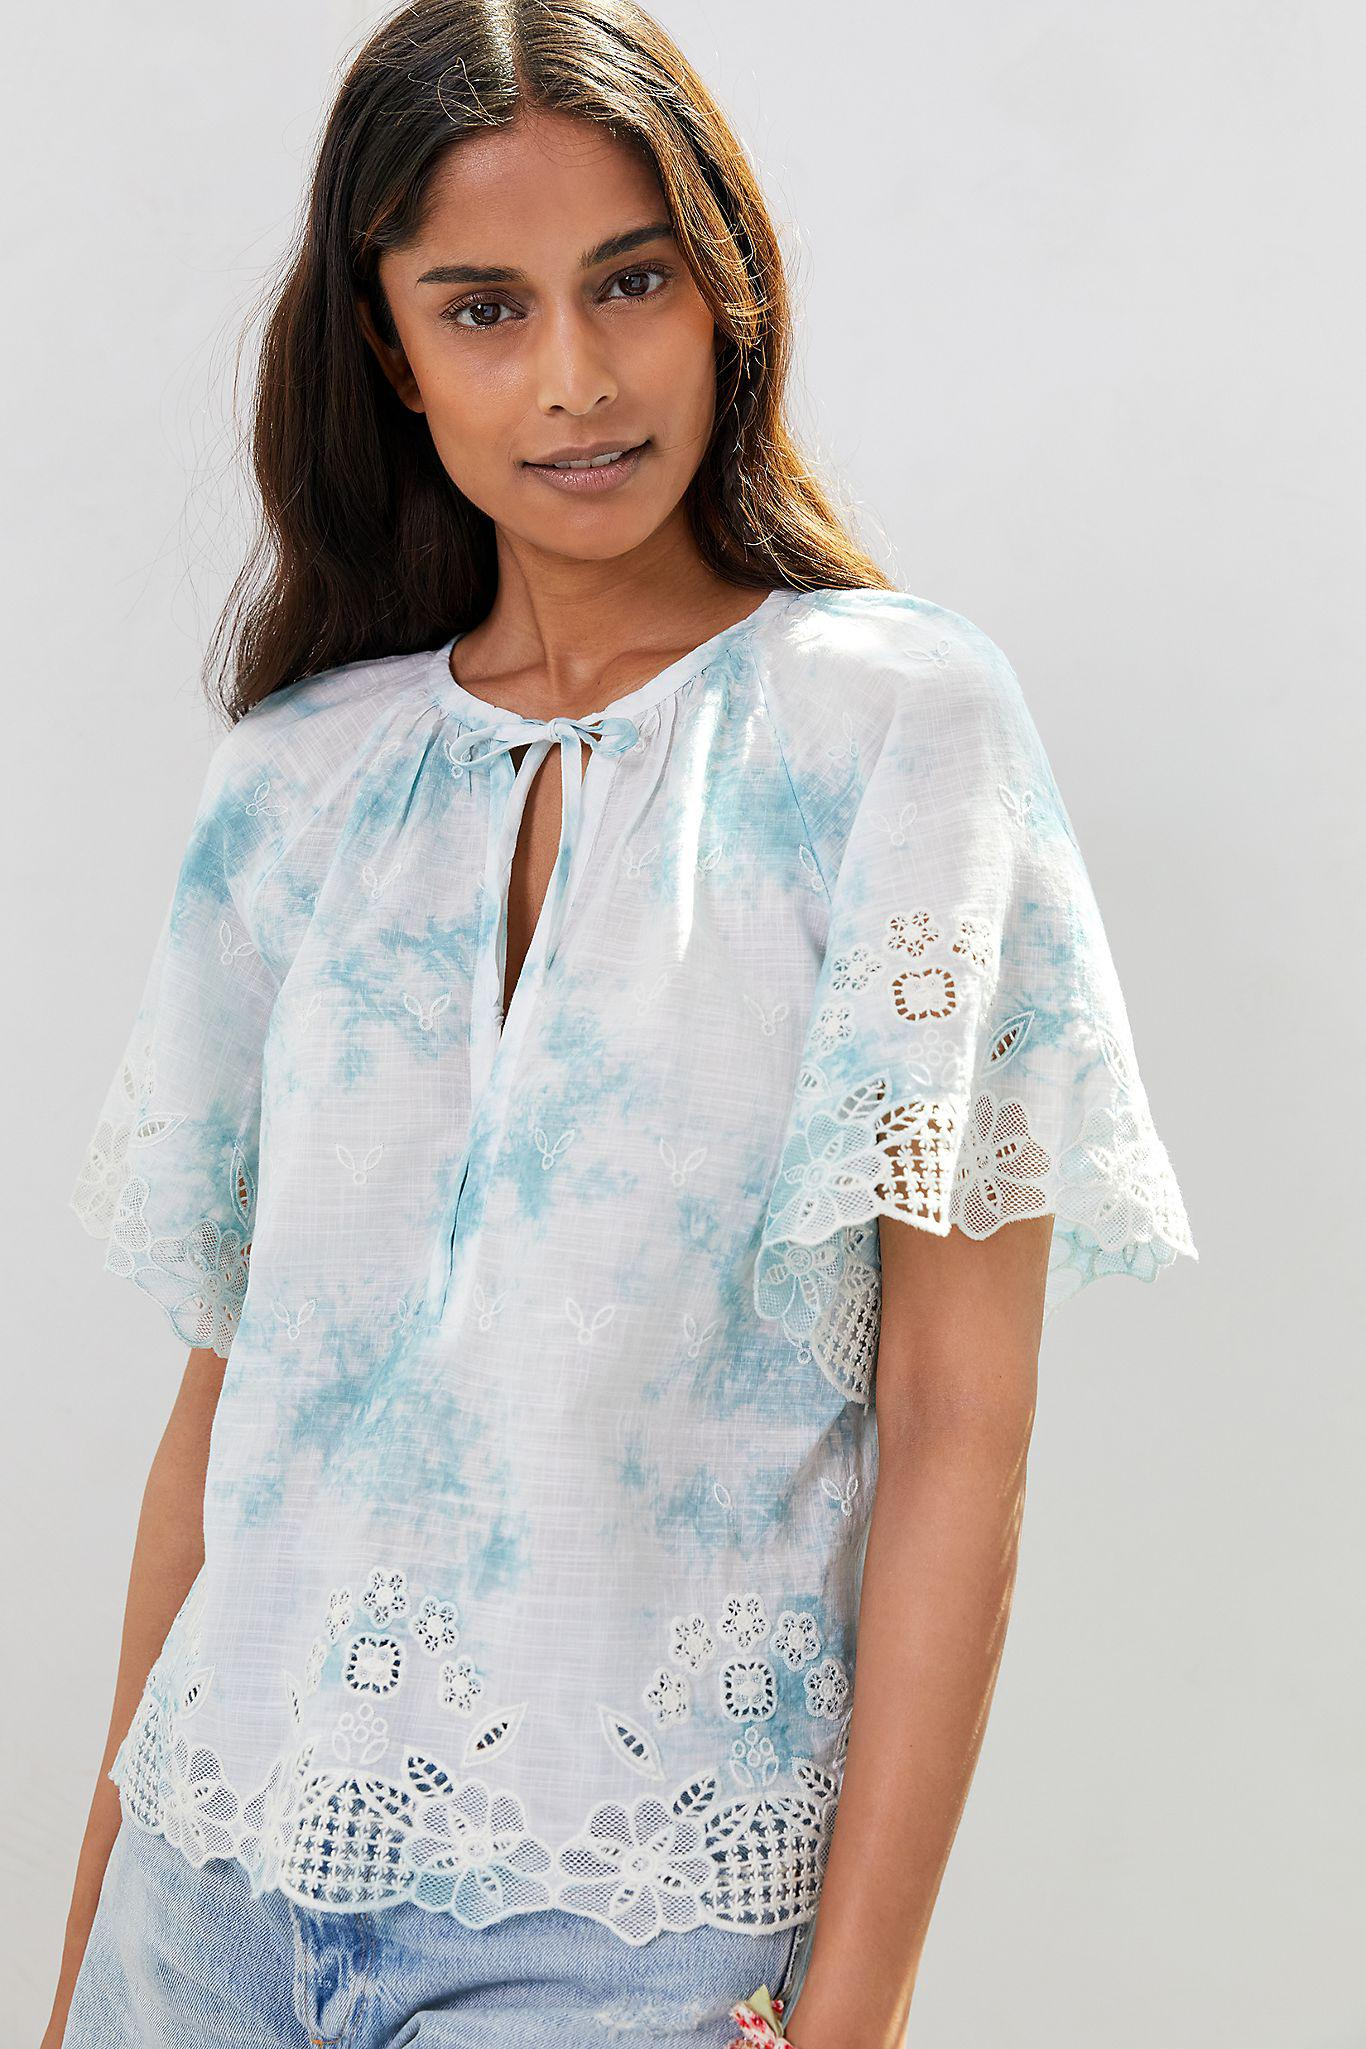 Embroidered Tie-Dye Blouse